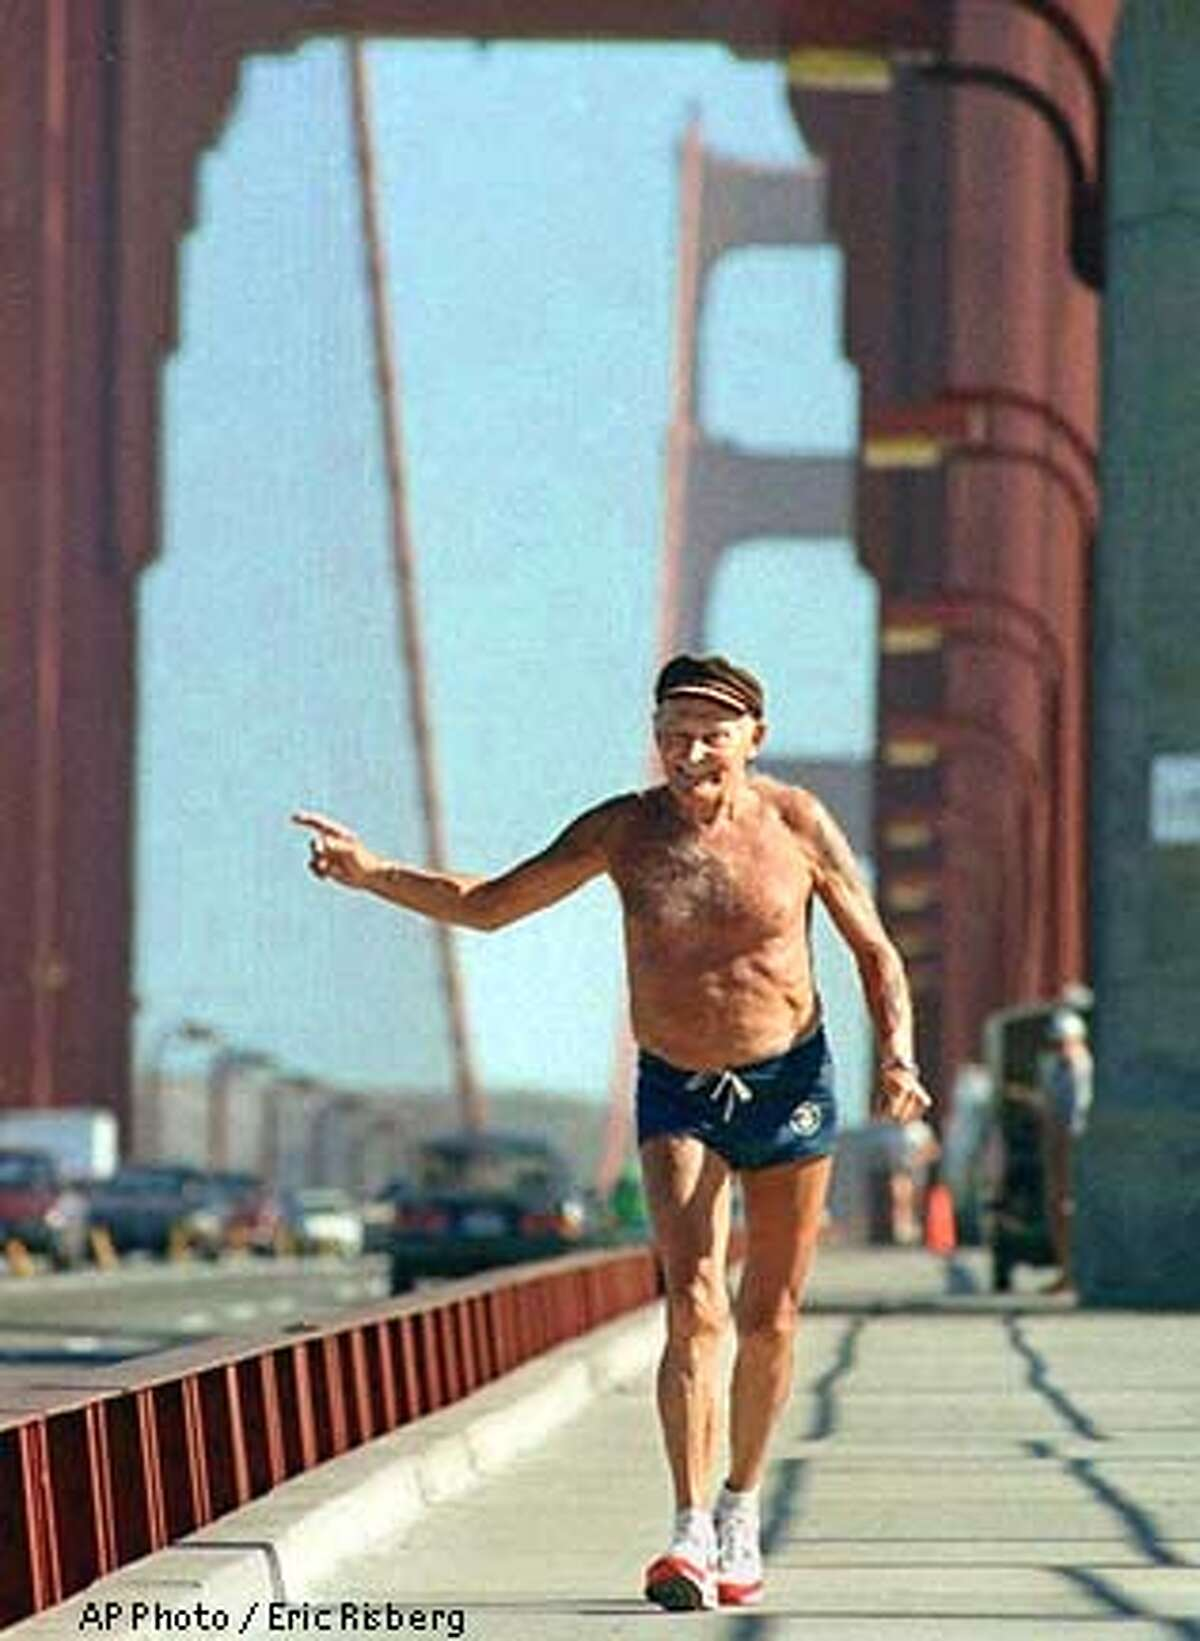 FILE--Octogenarian runner Walt Stack waves at passersby while running across the Golden Gate Bridge in San Francisco in June 1988. Stack, who used to run daily across the bridge to Sausalito and back to San Francisco, died Thursday, Jan. 19, 1995. (AP Photo/Eric Risberg)